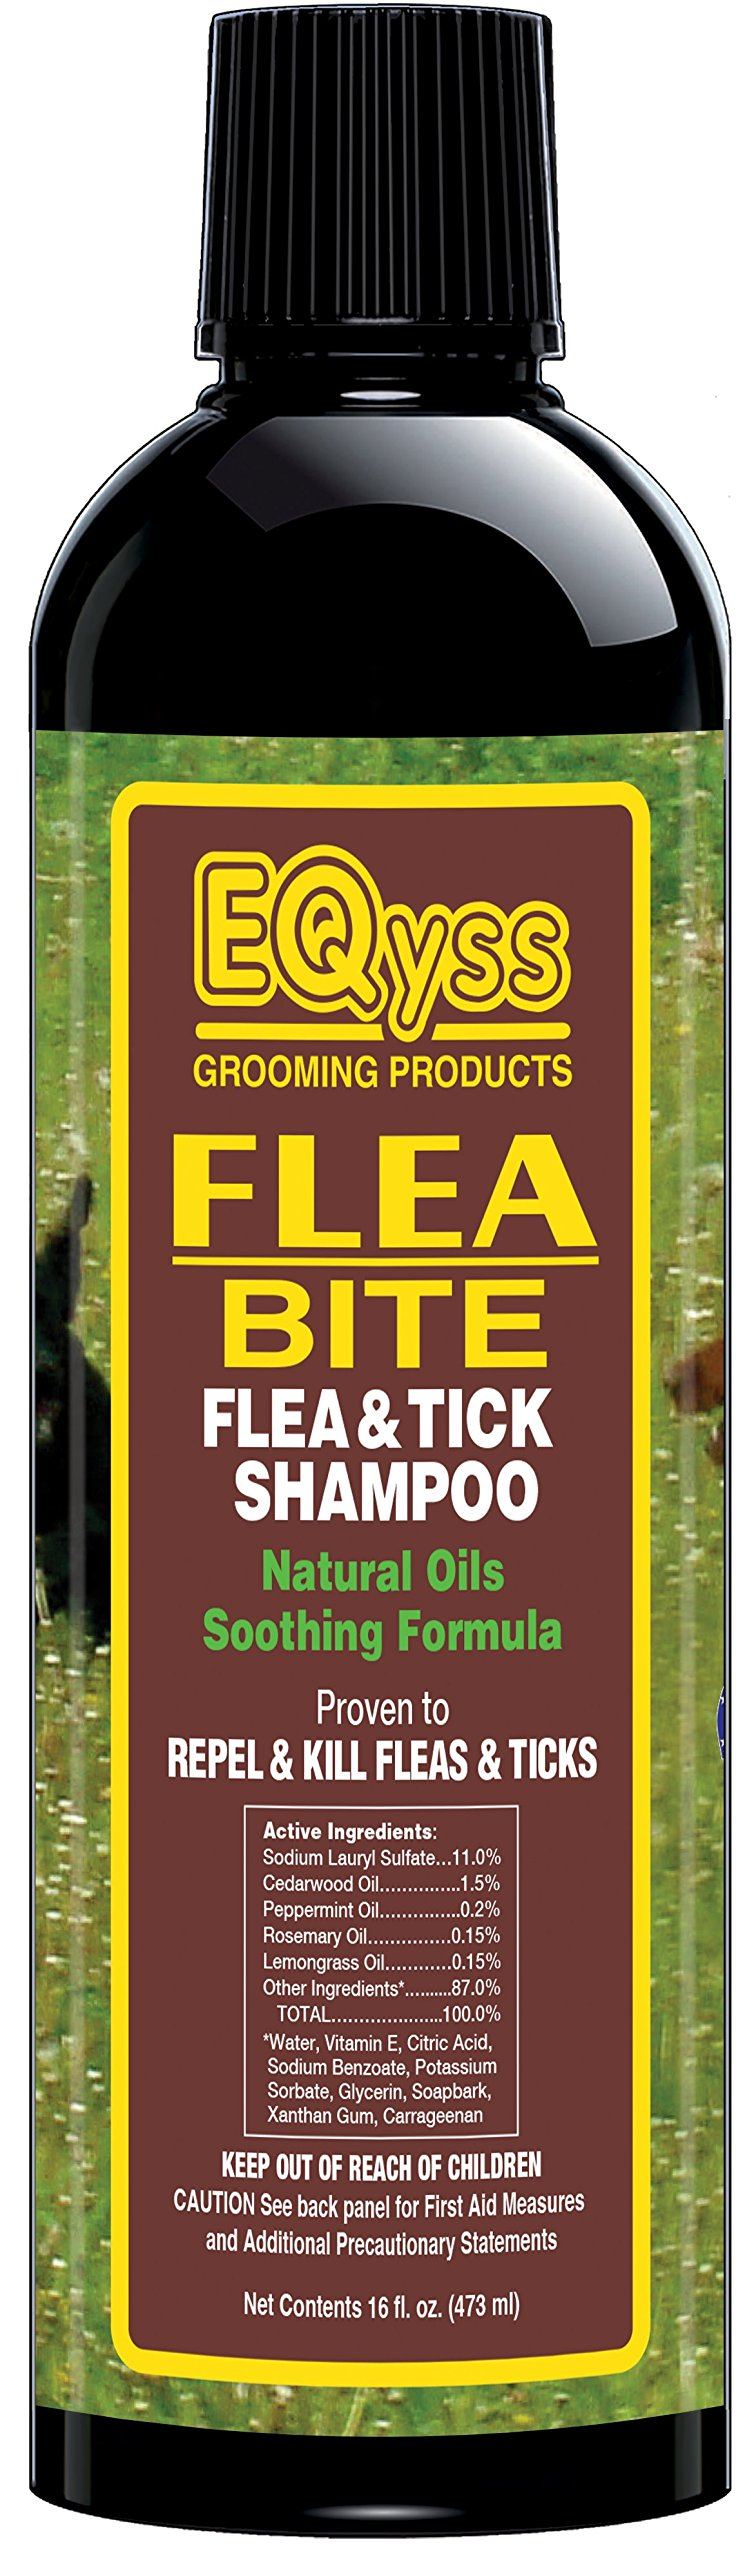 Eqyss Flea Bite Flea and Tick Shampoo for Pets (16 oz)